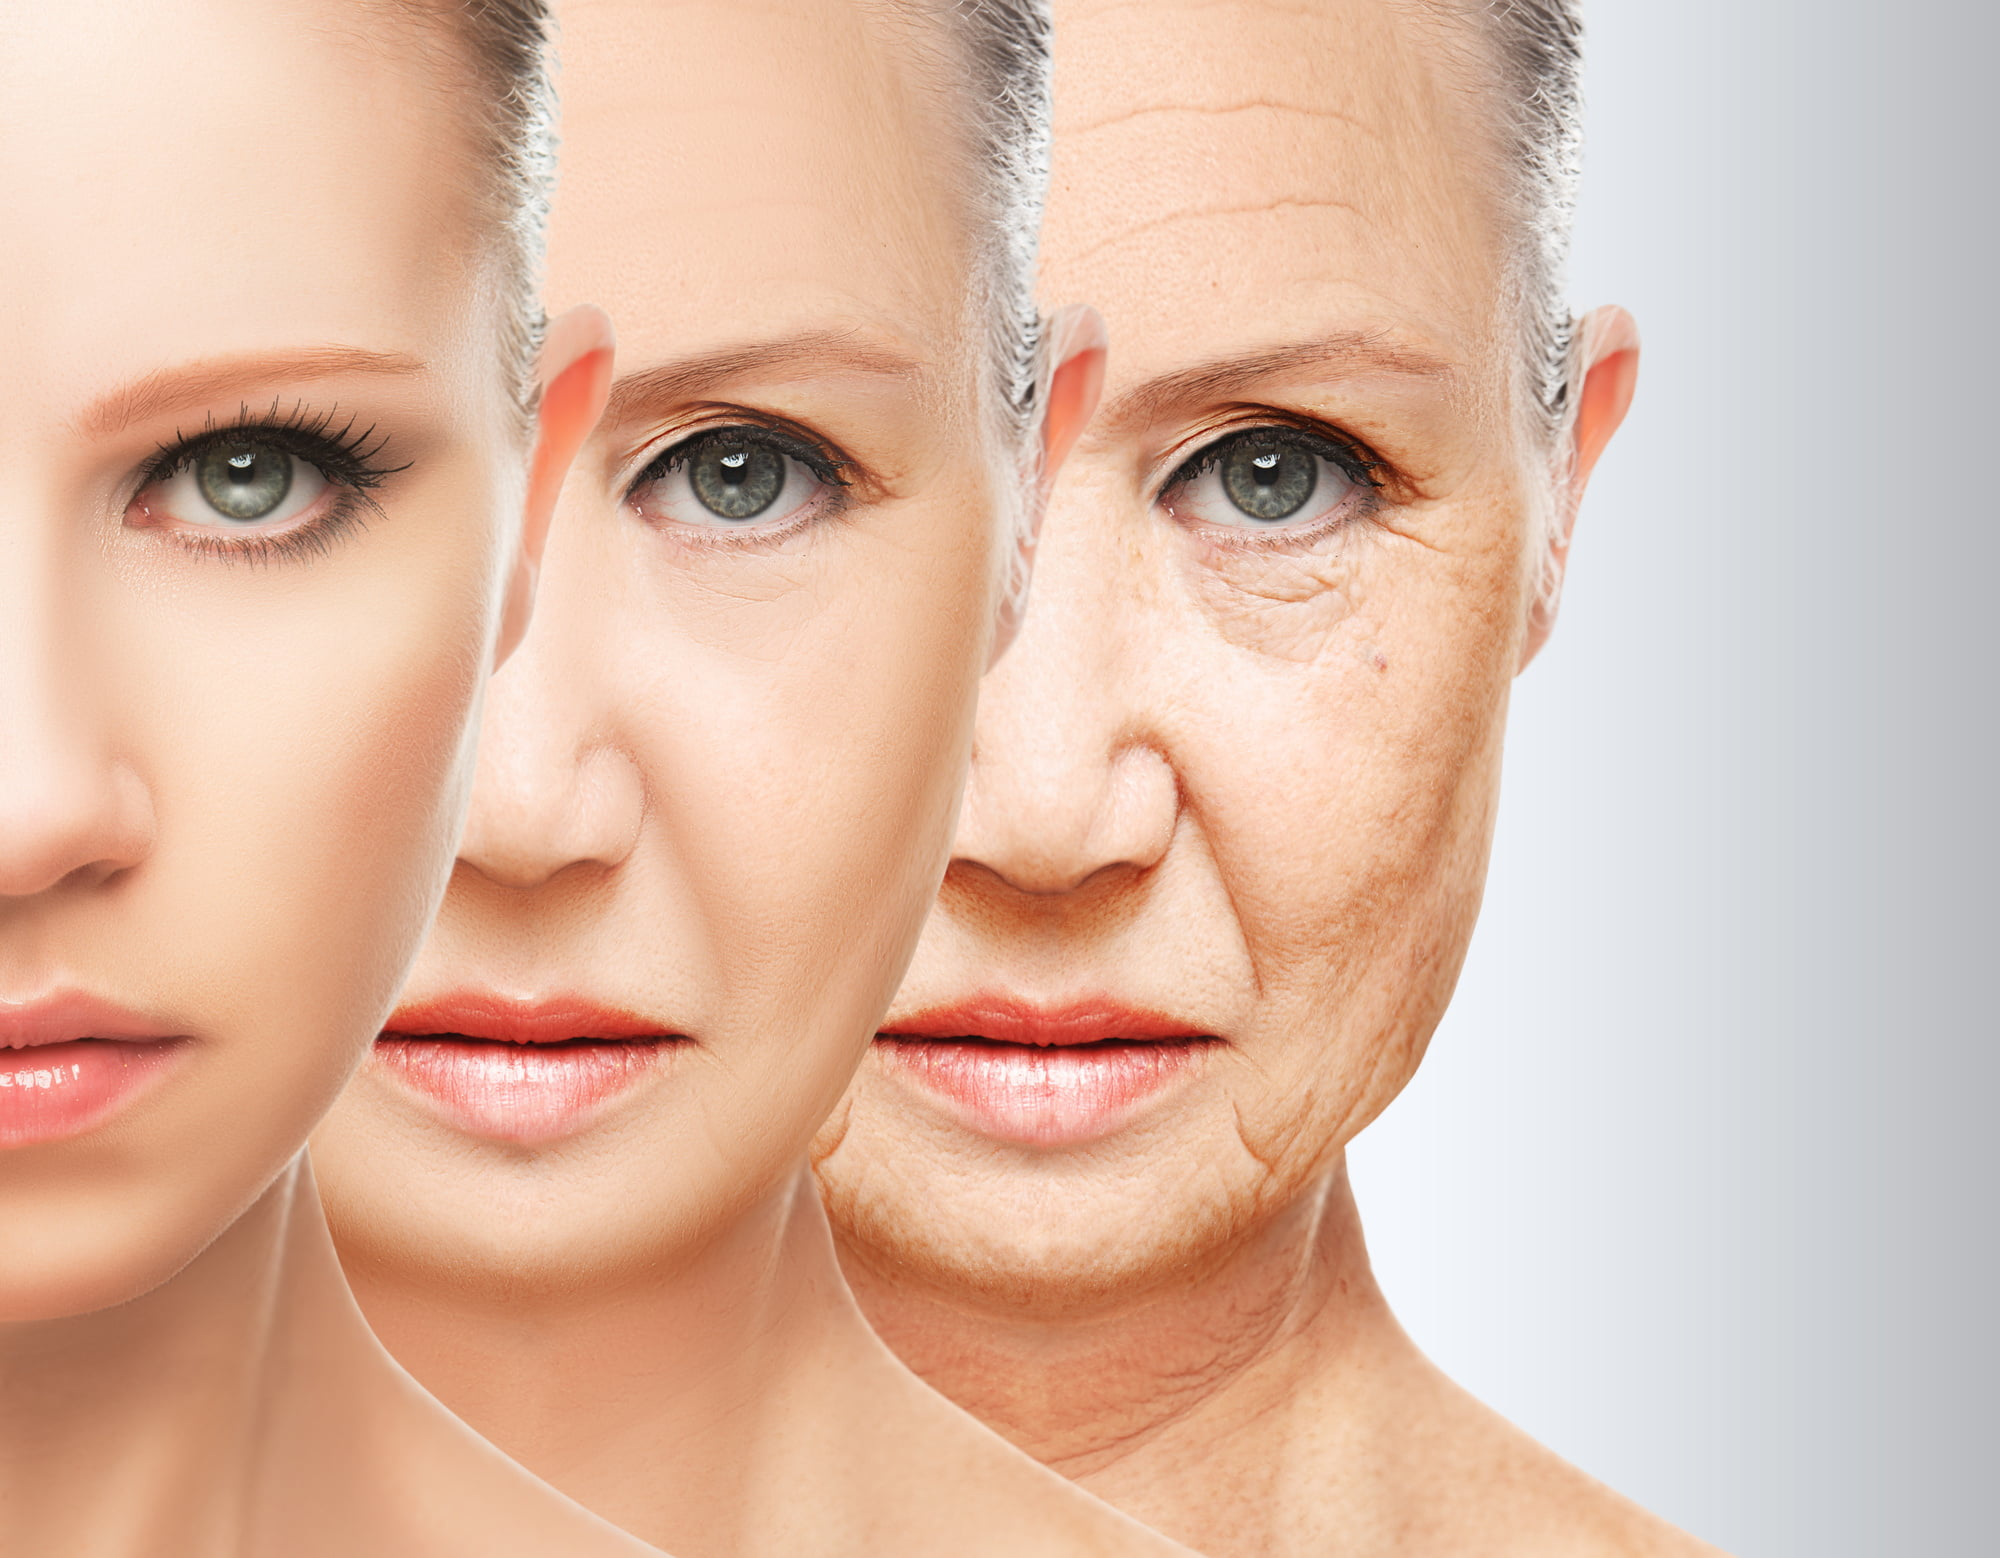 Skin Ageing Process: How it Works and What You Can Expect